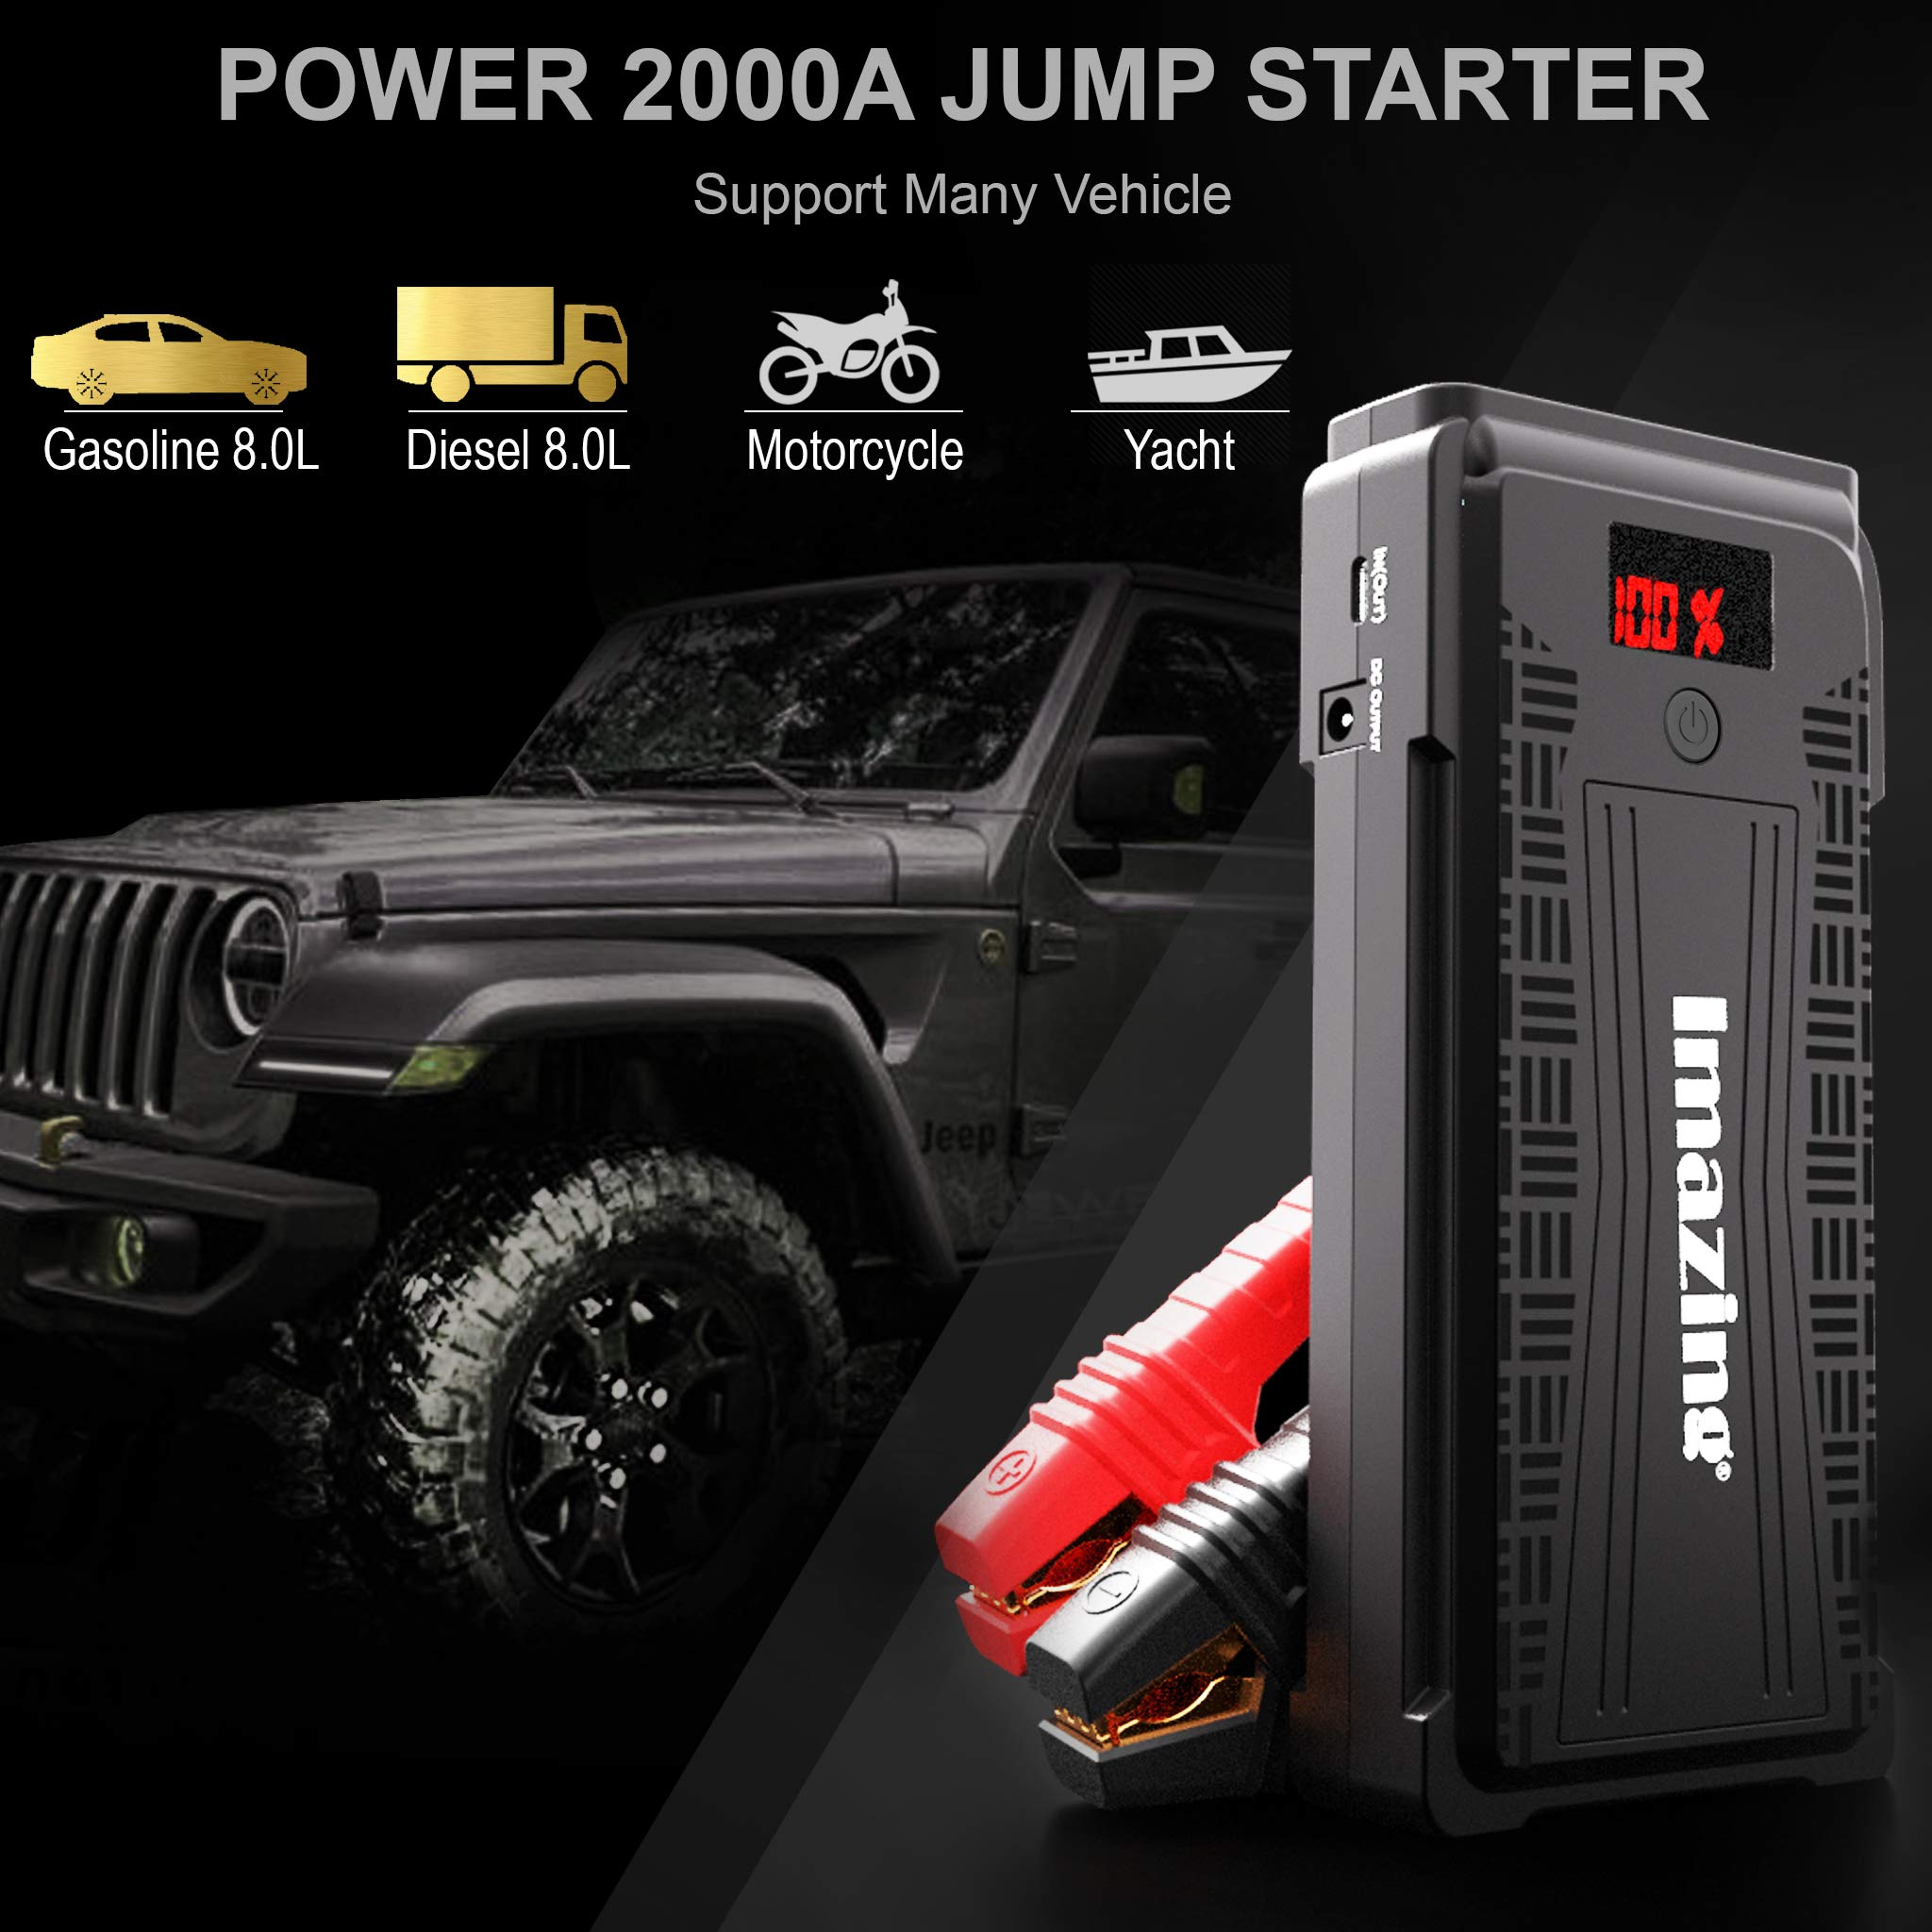 Imazing Portable Car Jump Starter - 2500A Peak 20000mAH (Up to 8L Gas or 8L Diesel Engine) 12V Auto Battery Booster Portable Power Pack with LCD Display Jumper Cables, QC 3.0 and LED Light by Imazing (Image #5)